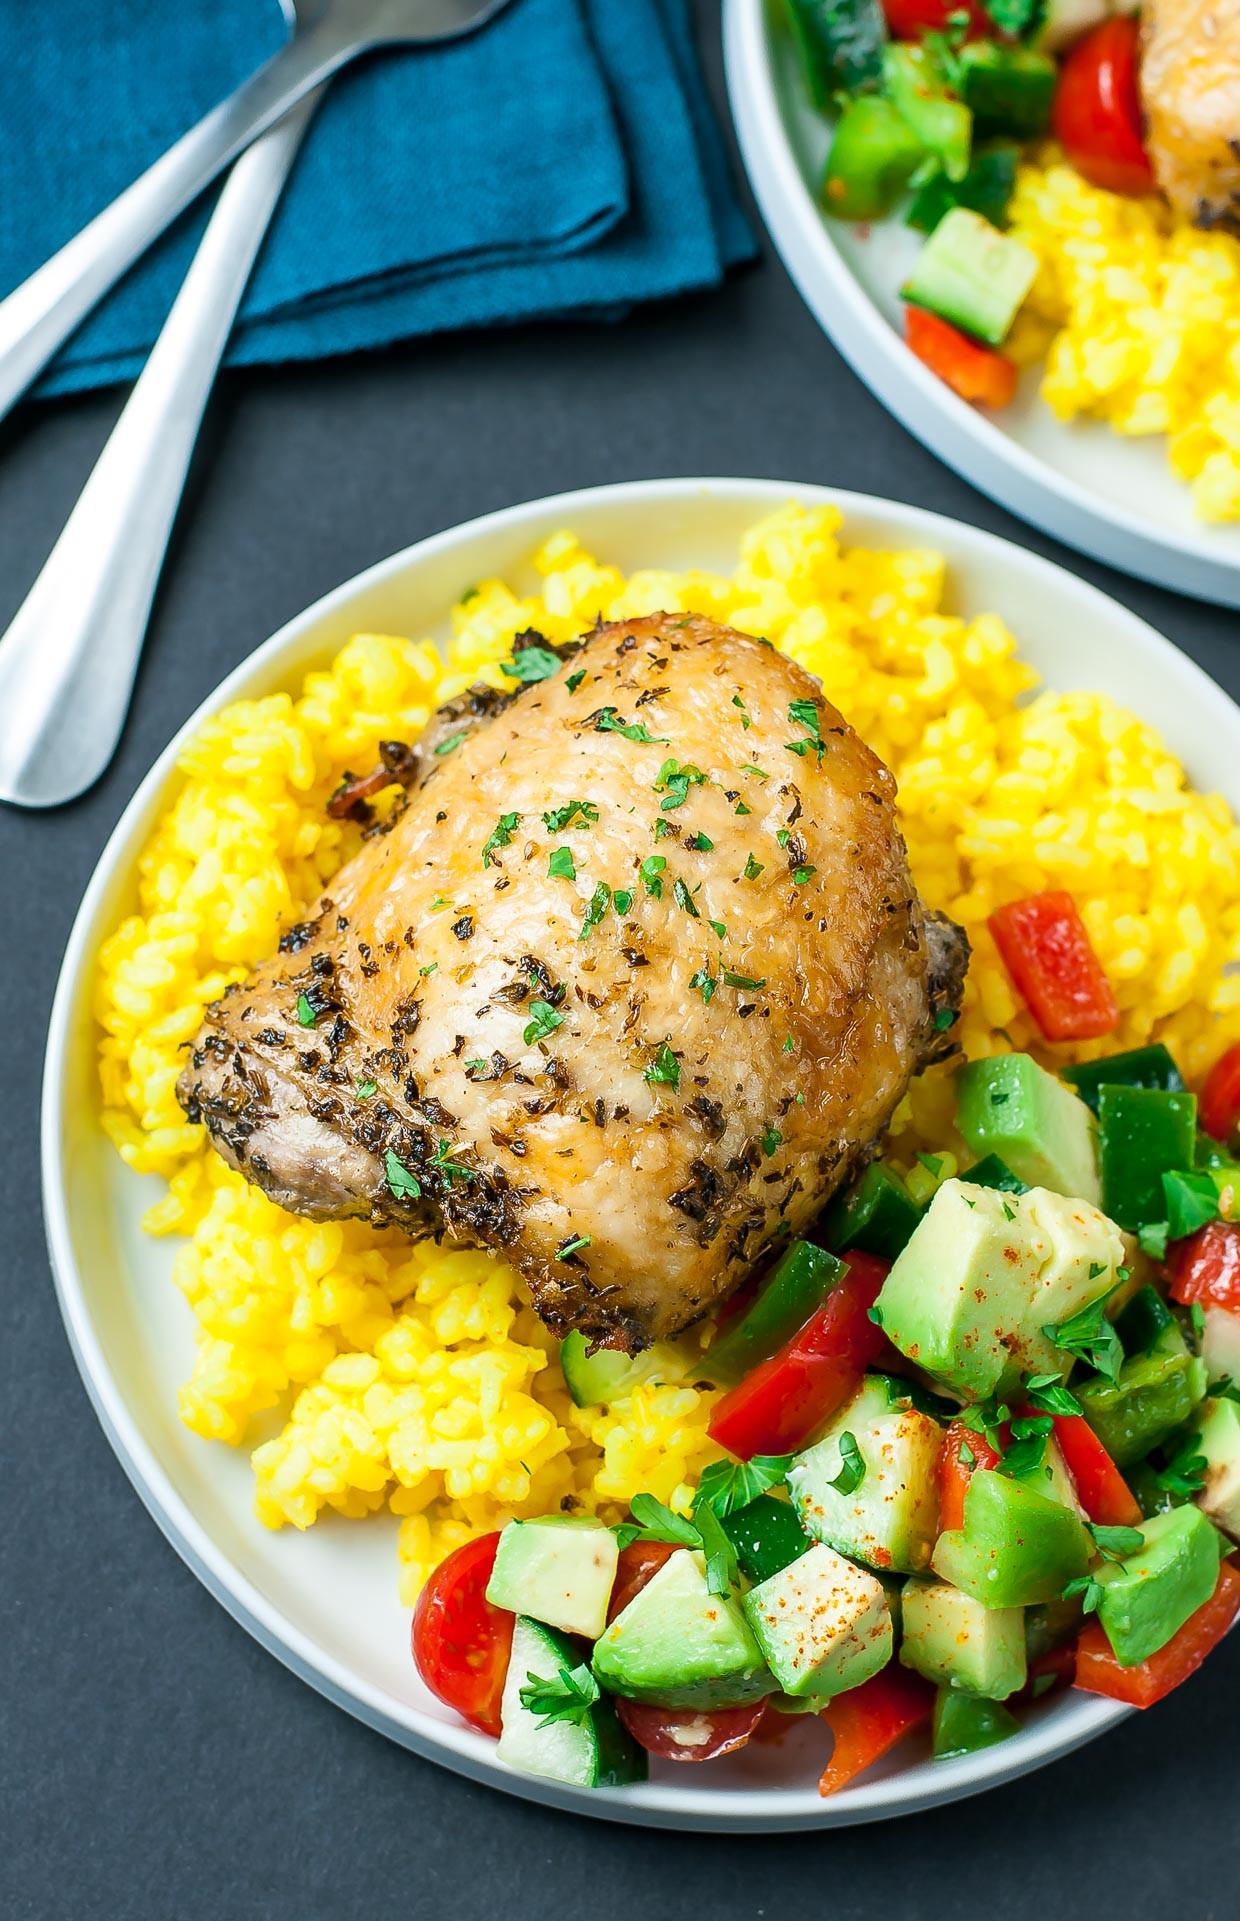 Baked Chicken Recipes For Dinner  Crispy Baked Chicken Thighs with Garlic Turmeric Rice